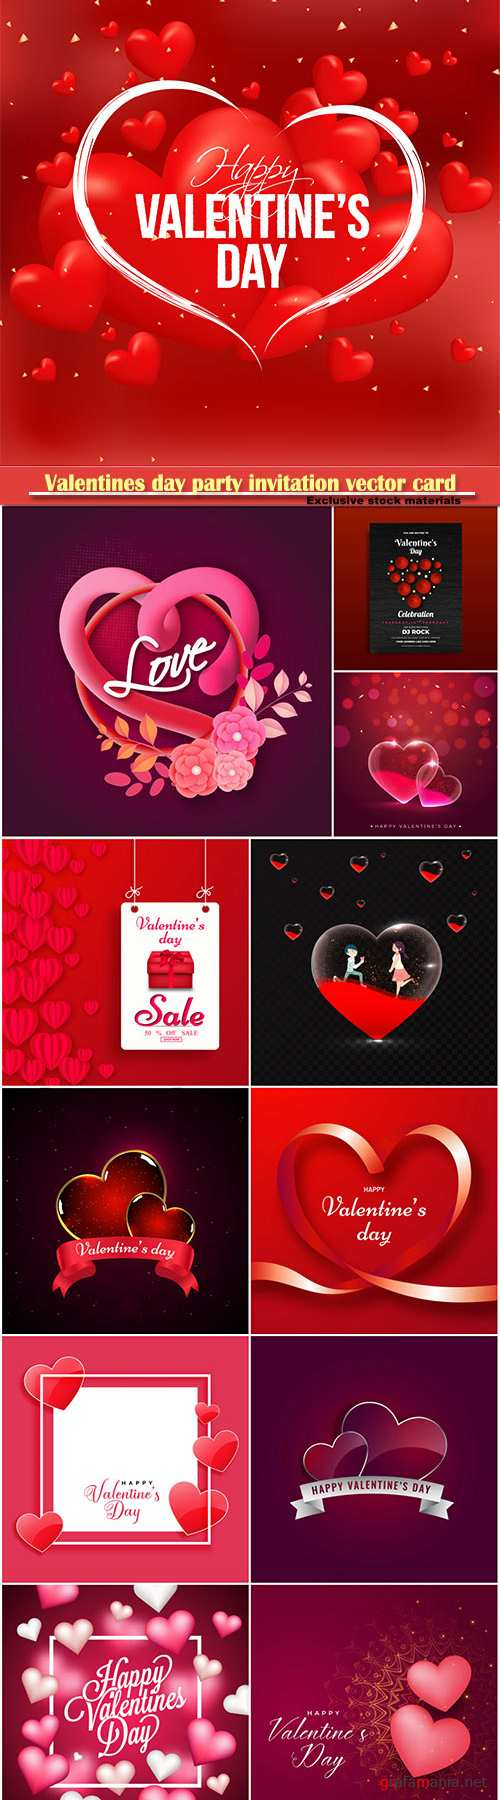 Valentines day party invitation vector card # 22